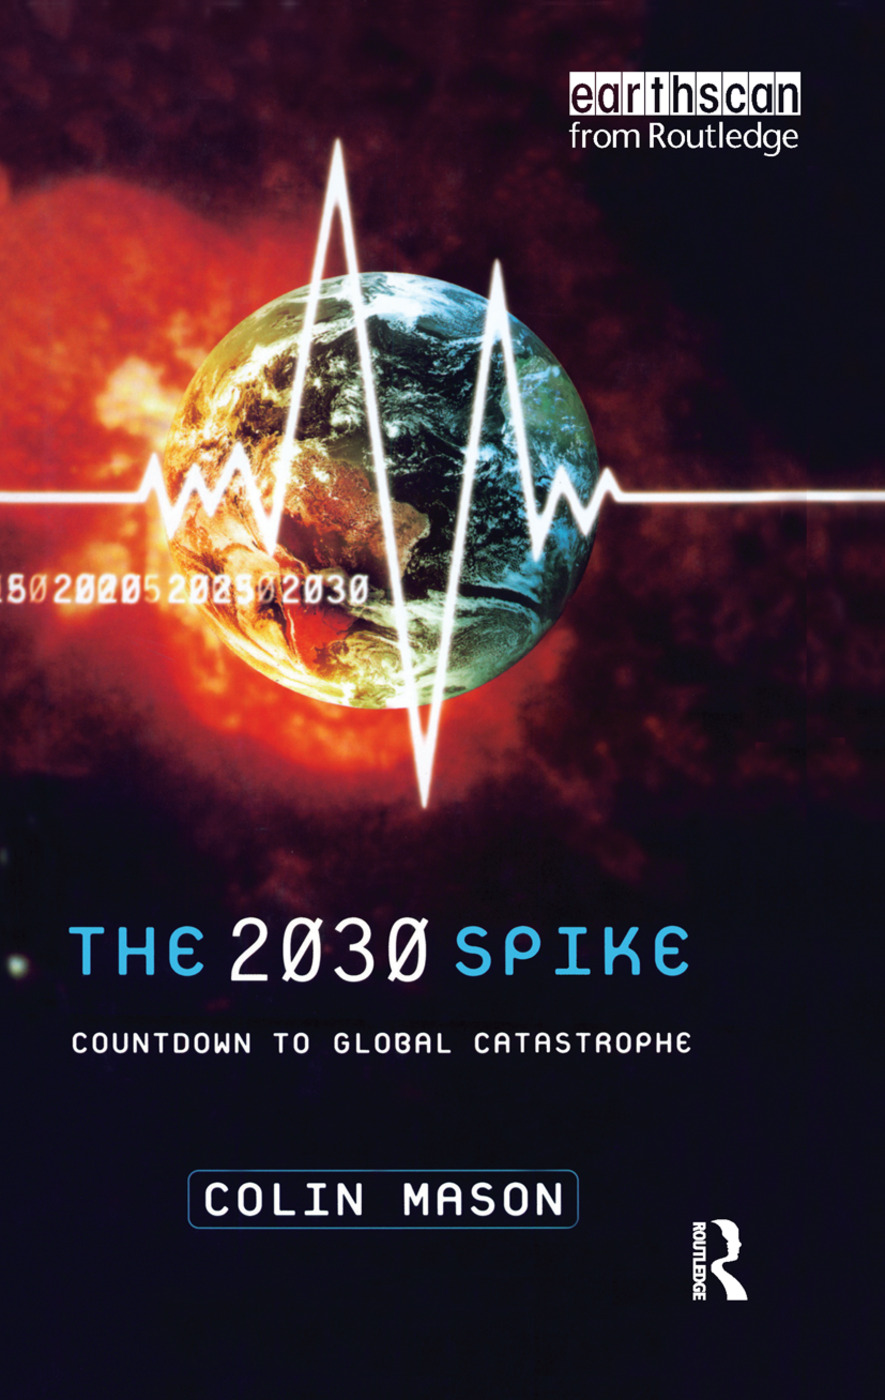 The 2030 Spike: Countdown to Global Catastrophe book cover